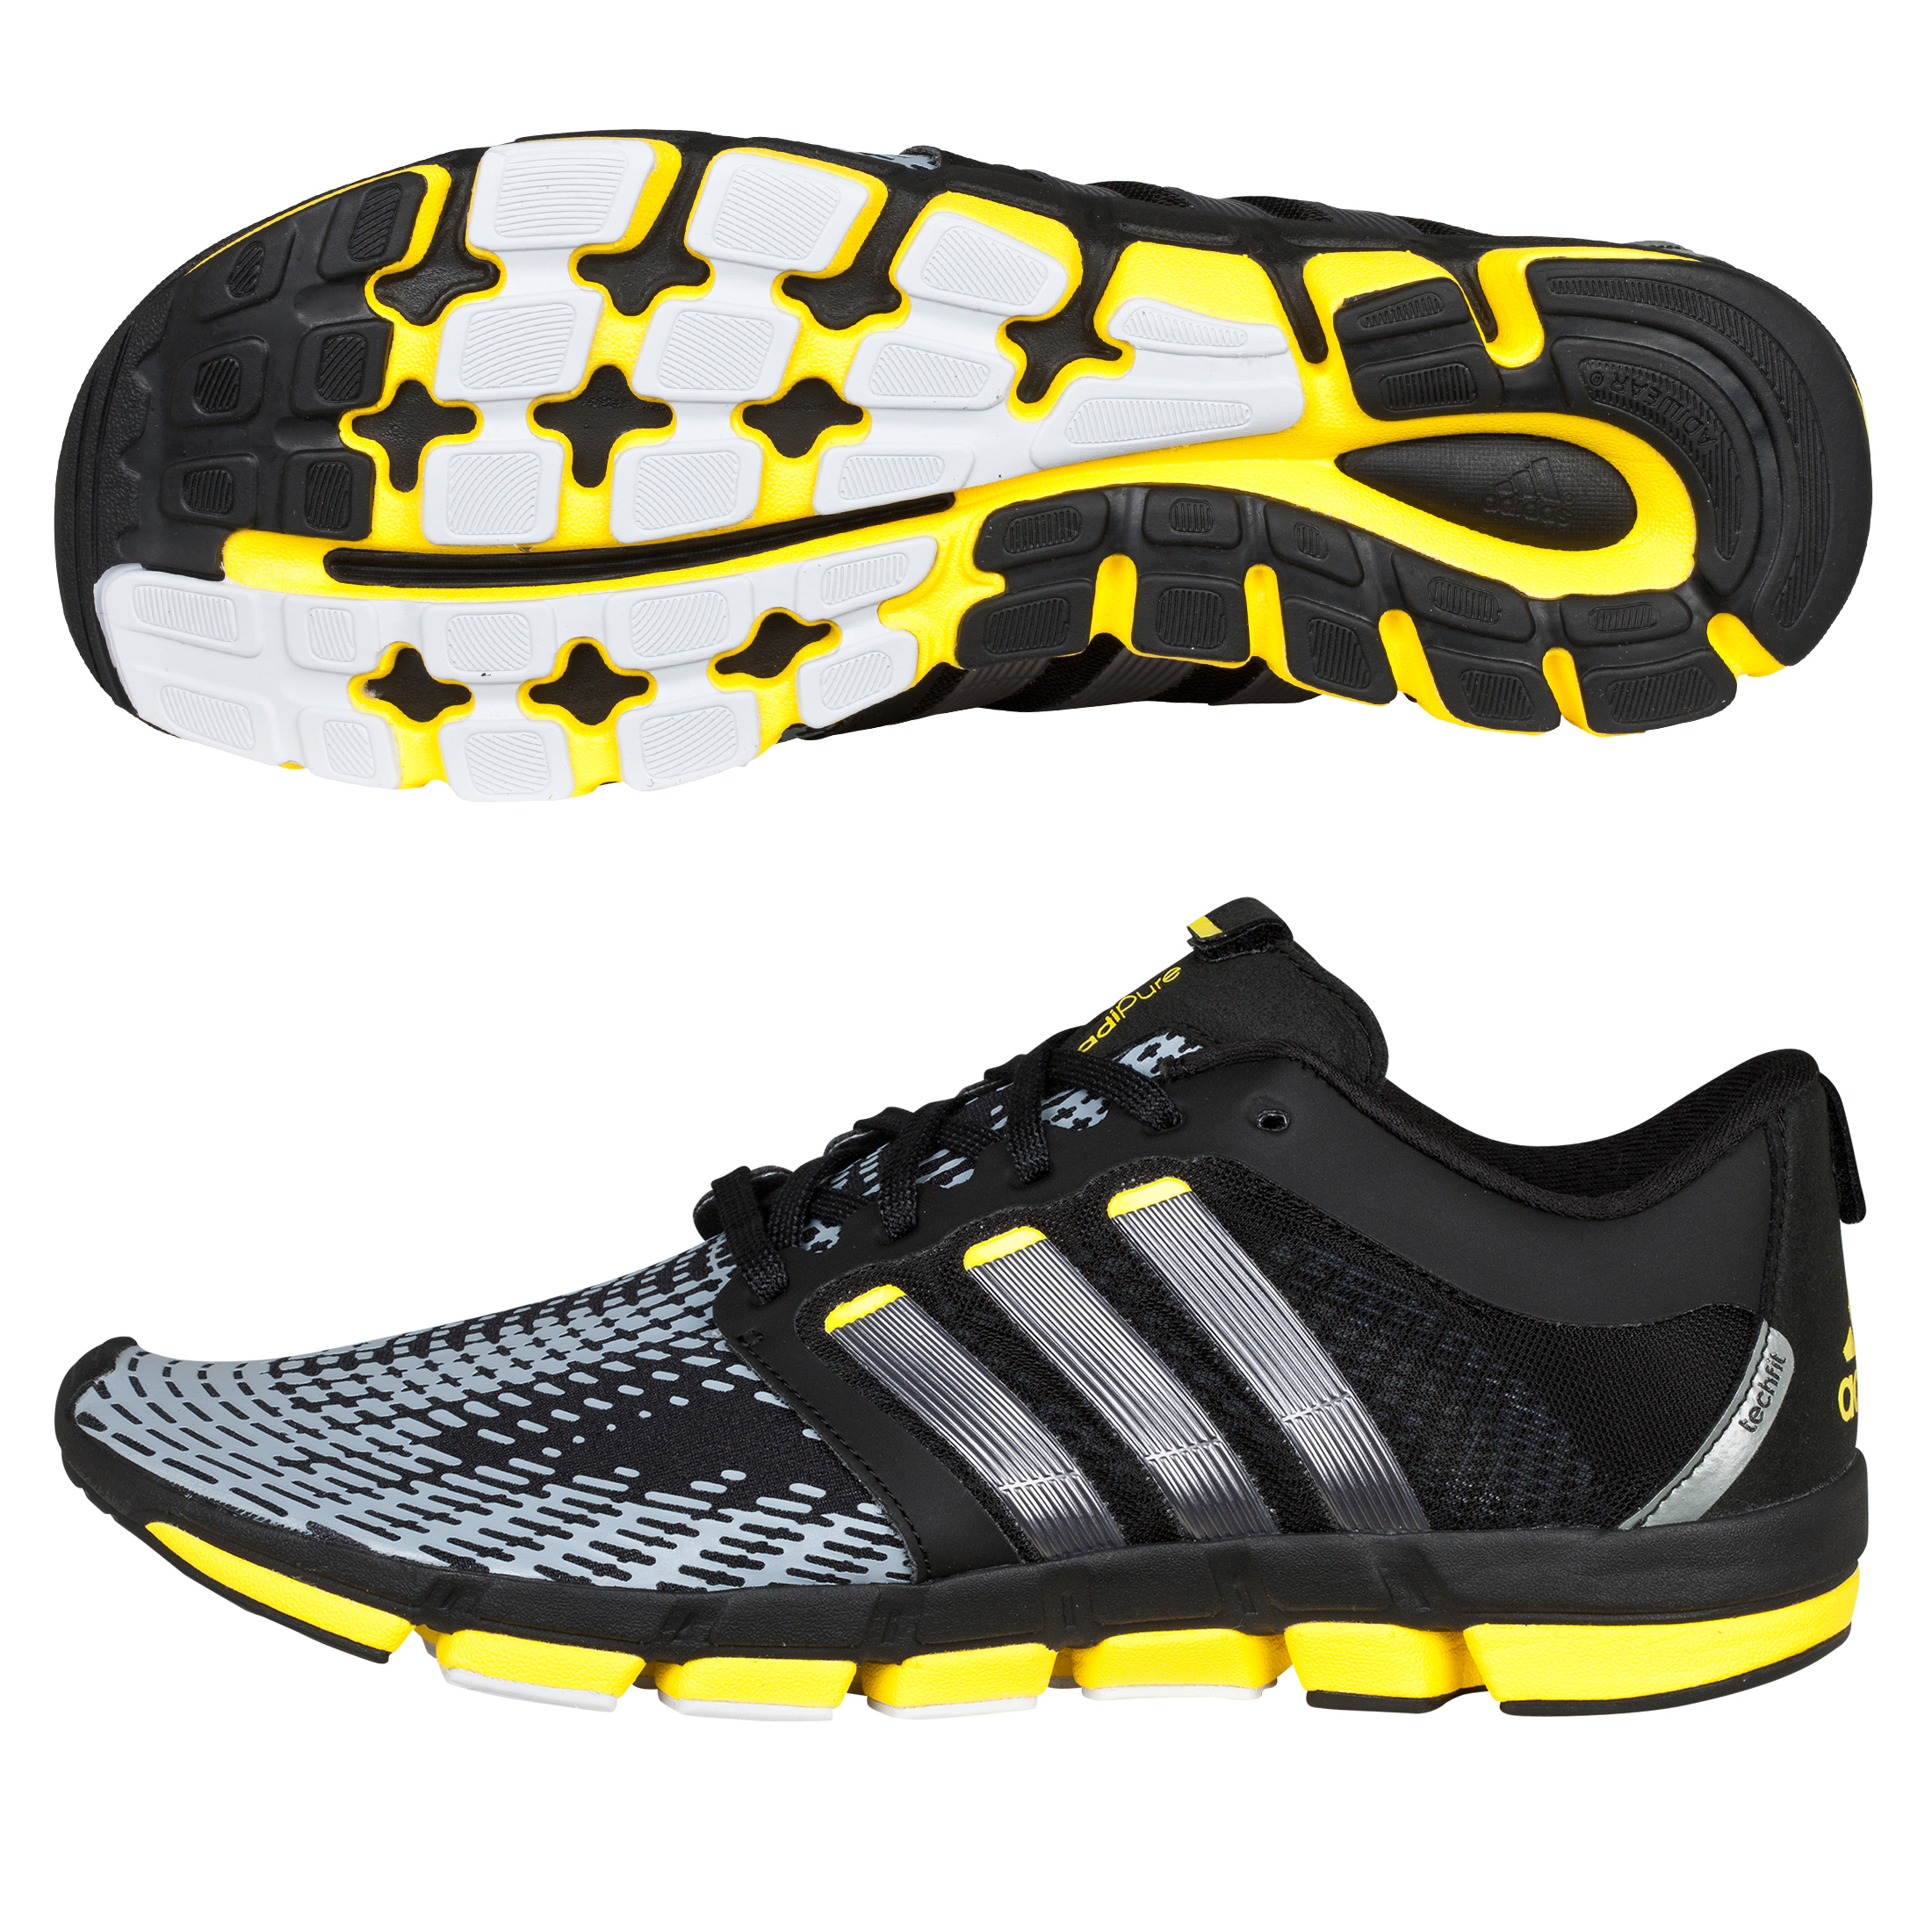 Adidas Adipure Motion Trainers - Black/Neo Iron/Vivid Yellow